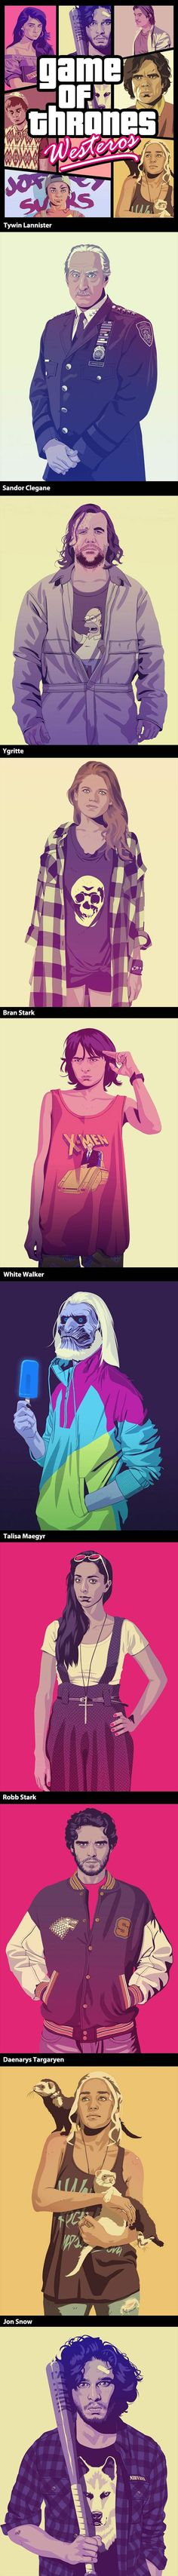 funny-Game-Thrones-80s-90s-Westeros